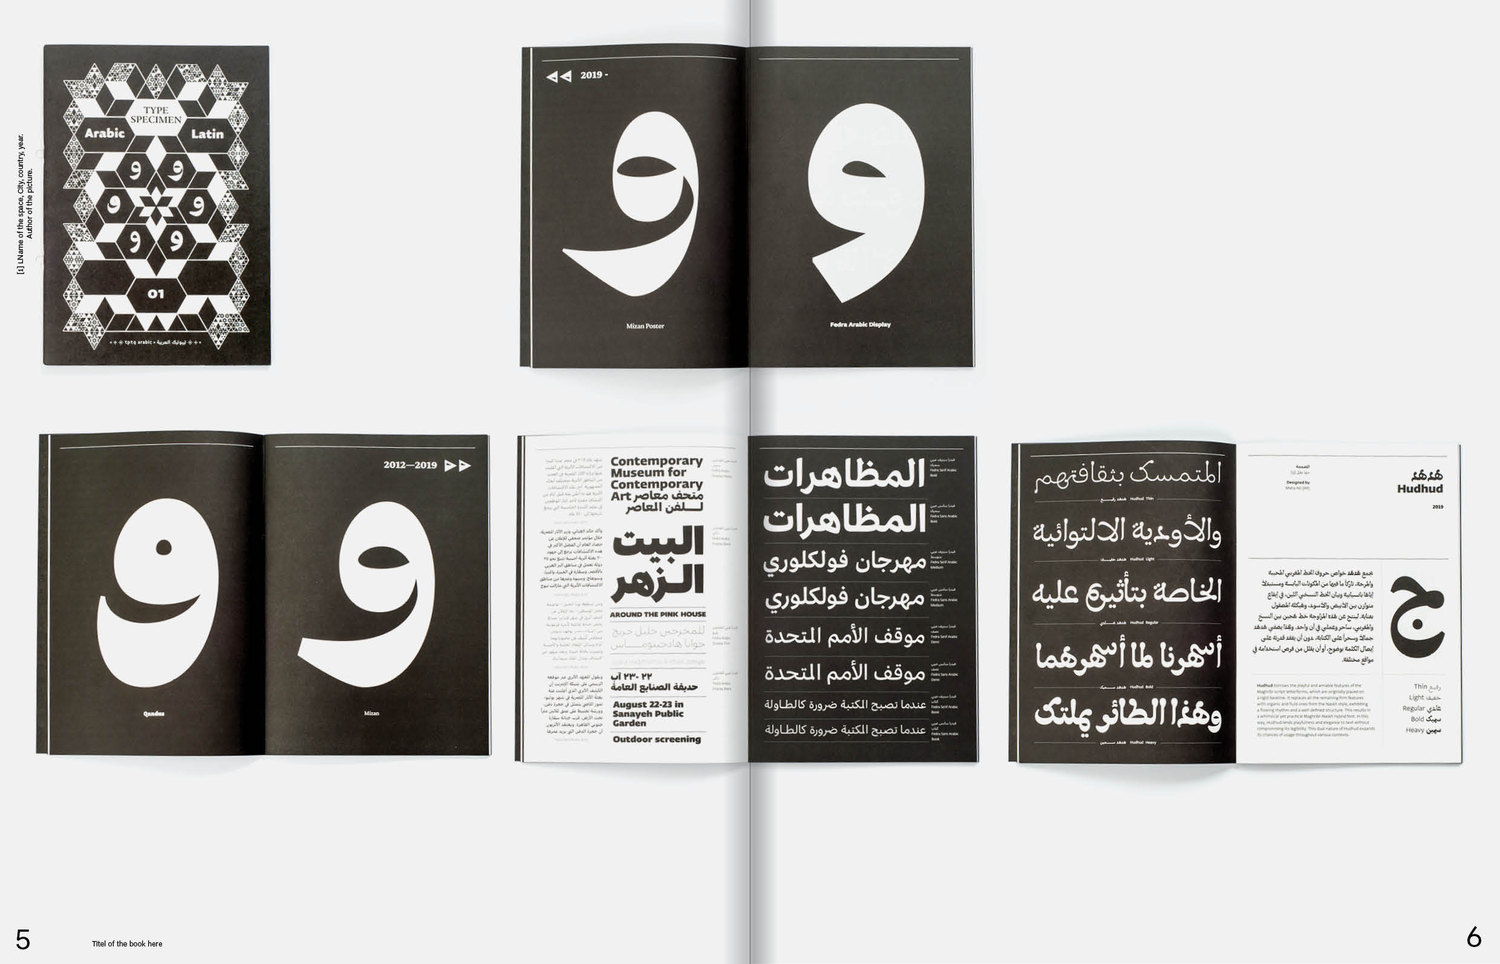 support idependent type Mockup Content Arabic risultato